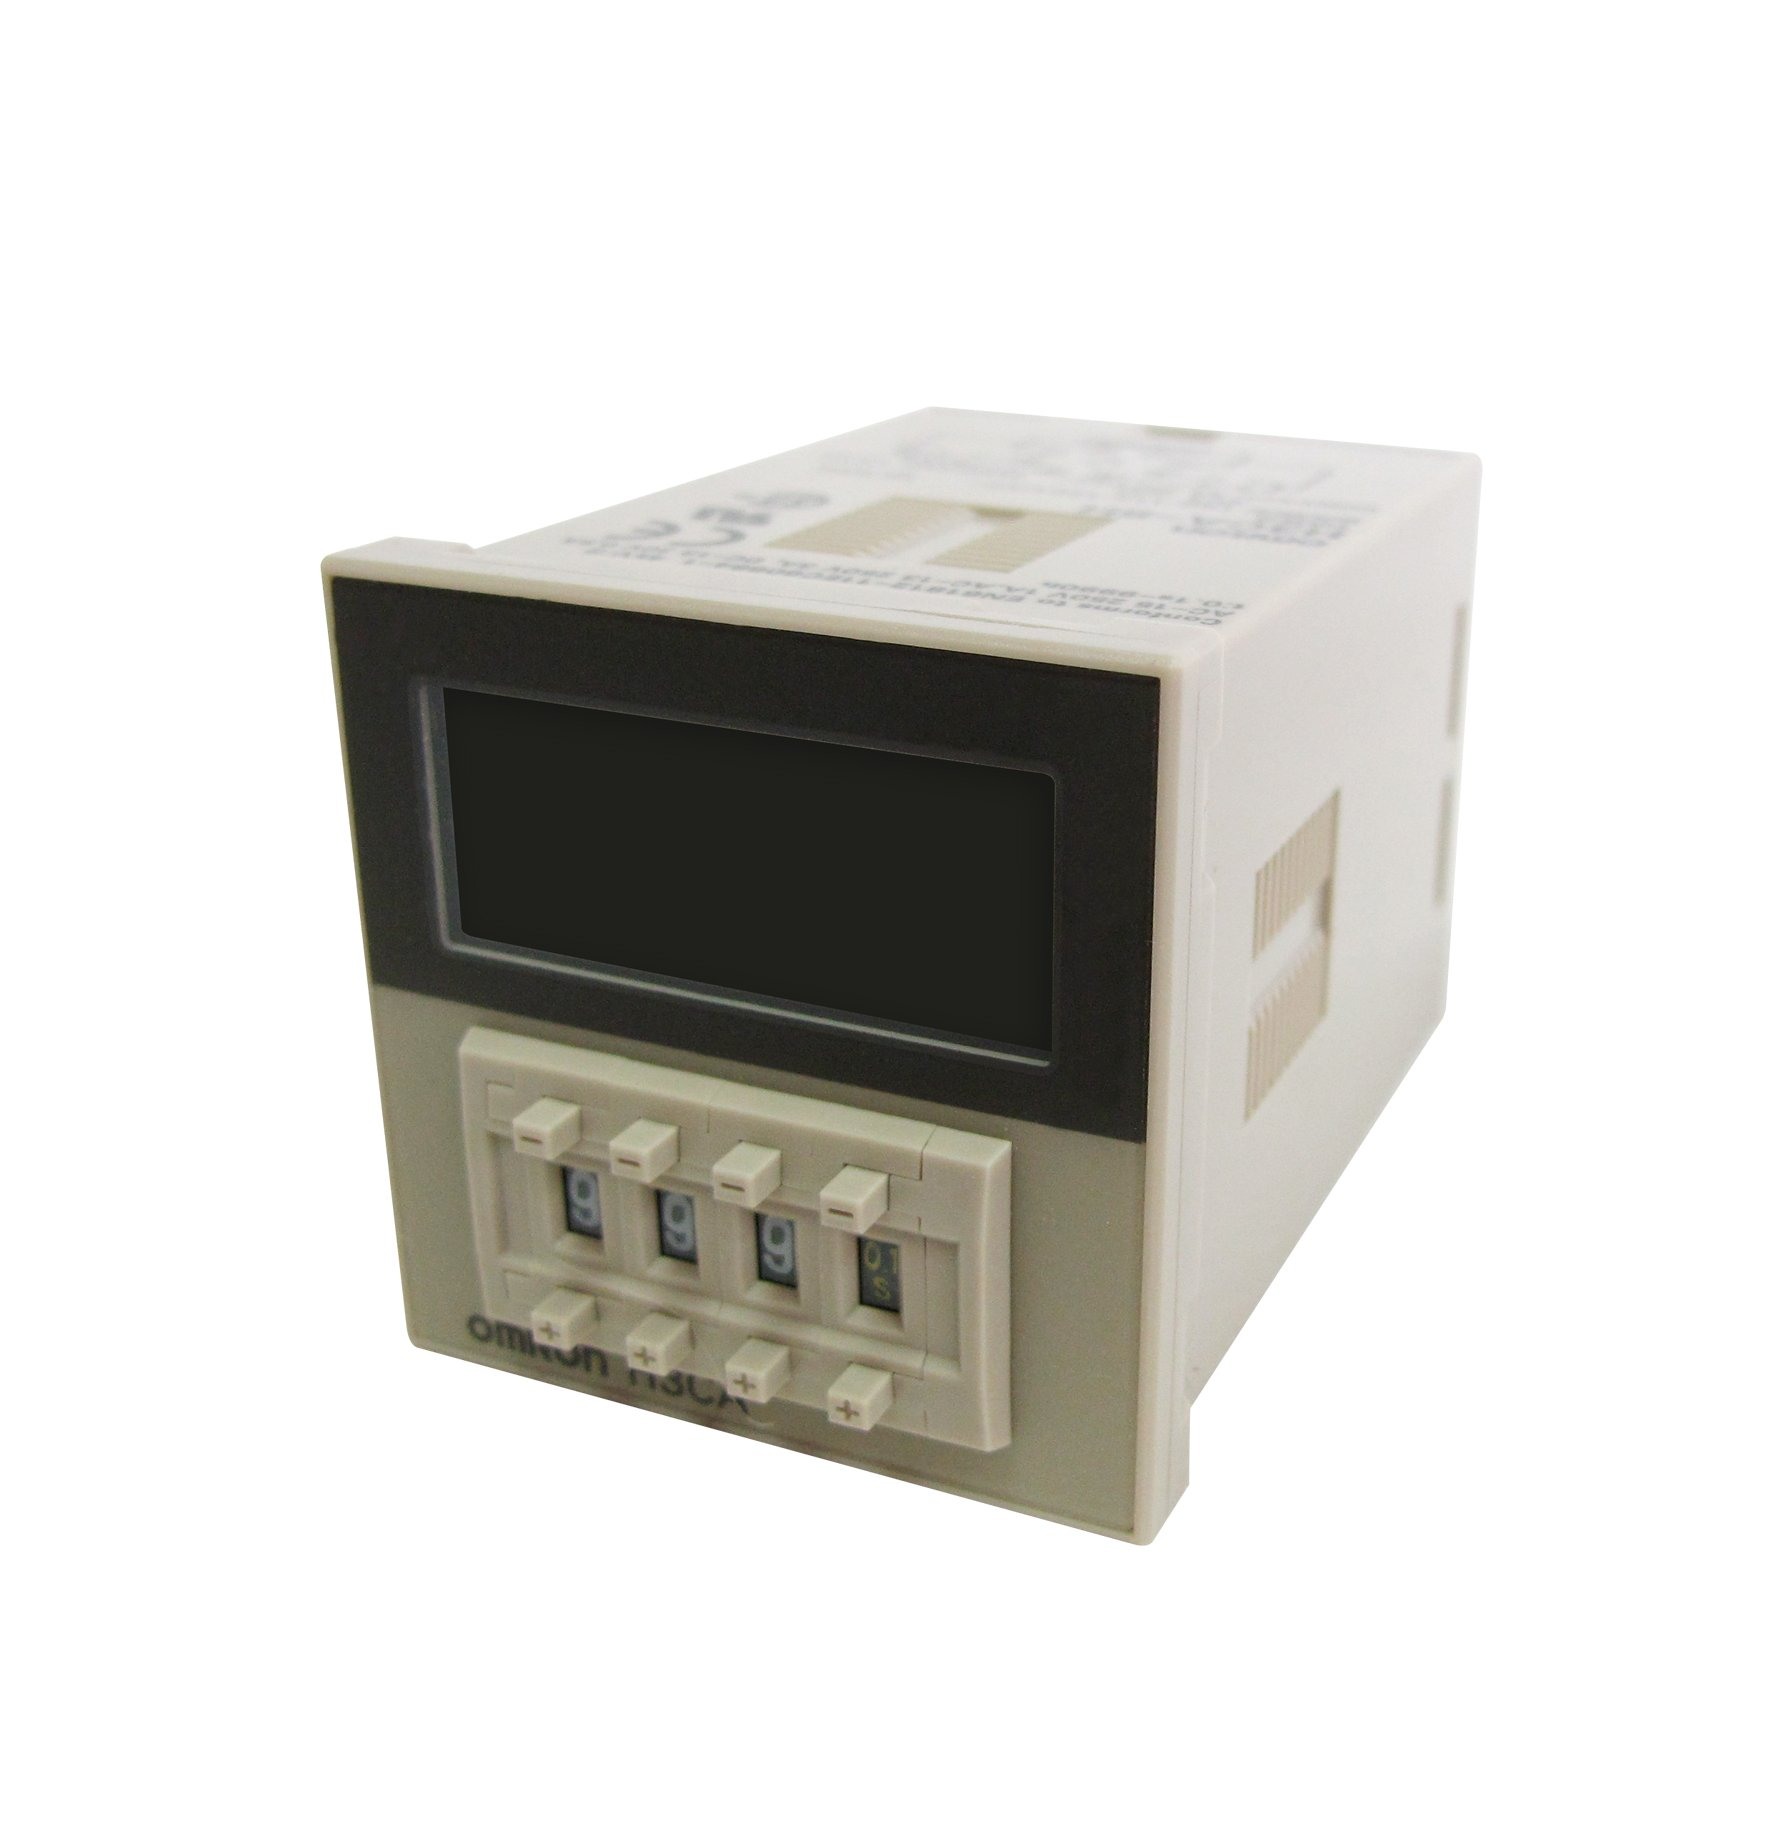 OMRON H3CA-8 DC24 Solid-state Timer (ON-delay operation)(Supply voltage: DC24V) NN